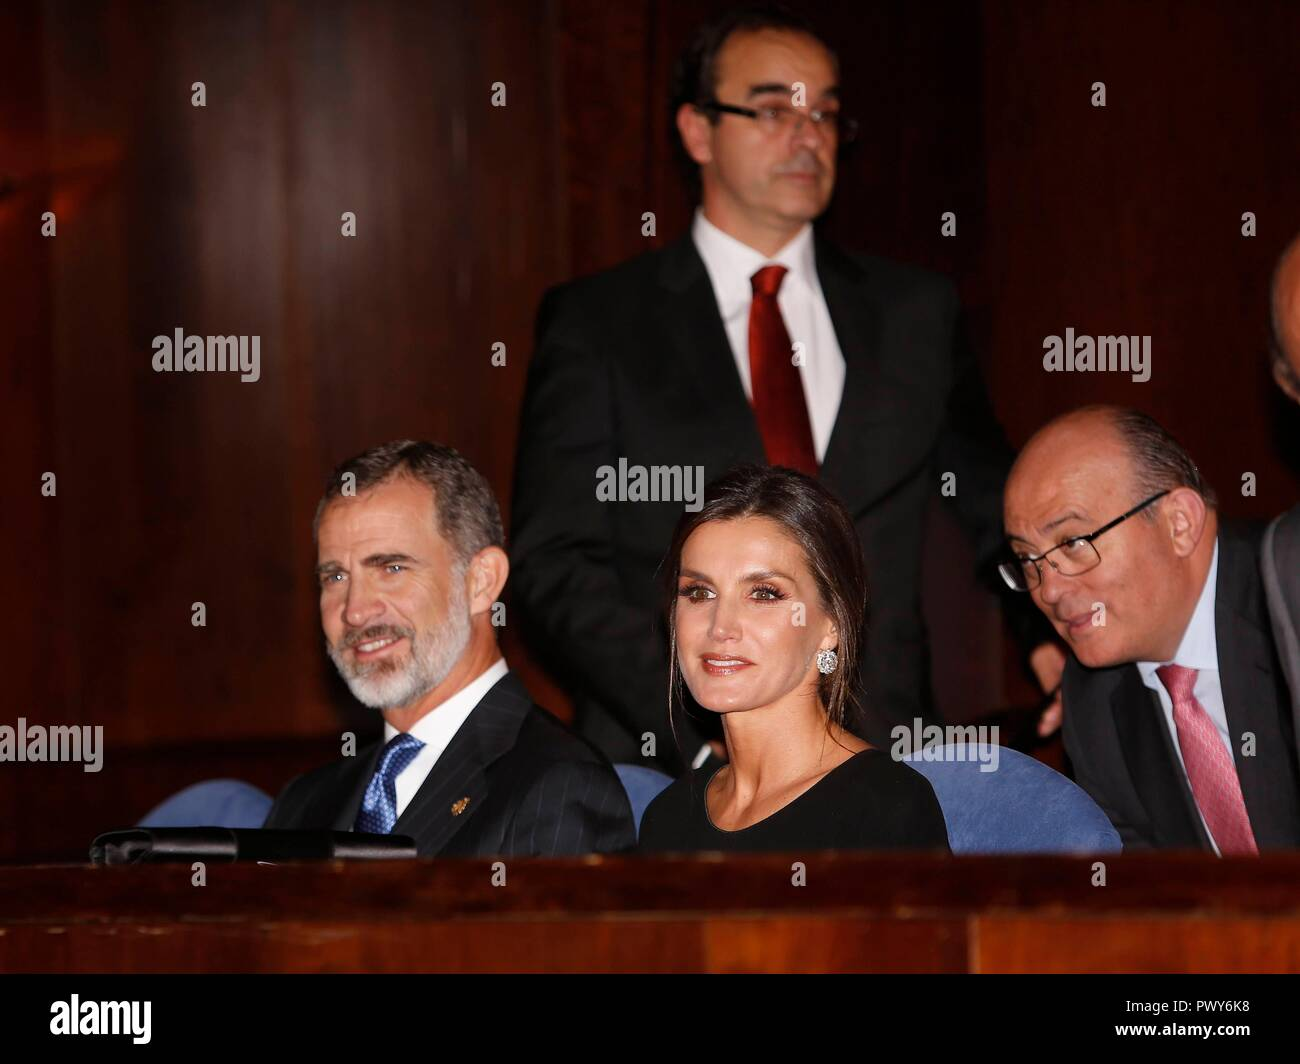 Oviedo, Spain. 18th Oct, 2018. Spanish Kings Felipe VI and Queen Letizia during the celebration of the 27th edition of the concert of the Princess of Asturias Awards 2018 in Oviedo, on Thursday 18 October 2018 Credit: CORDON PRESS/Alamy Live News - Stock Image